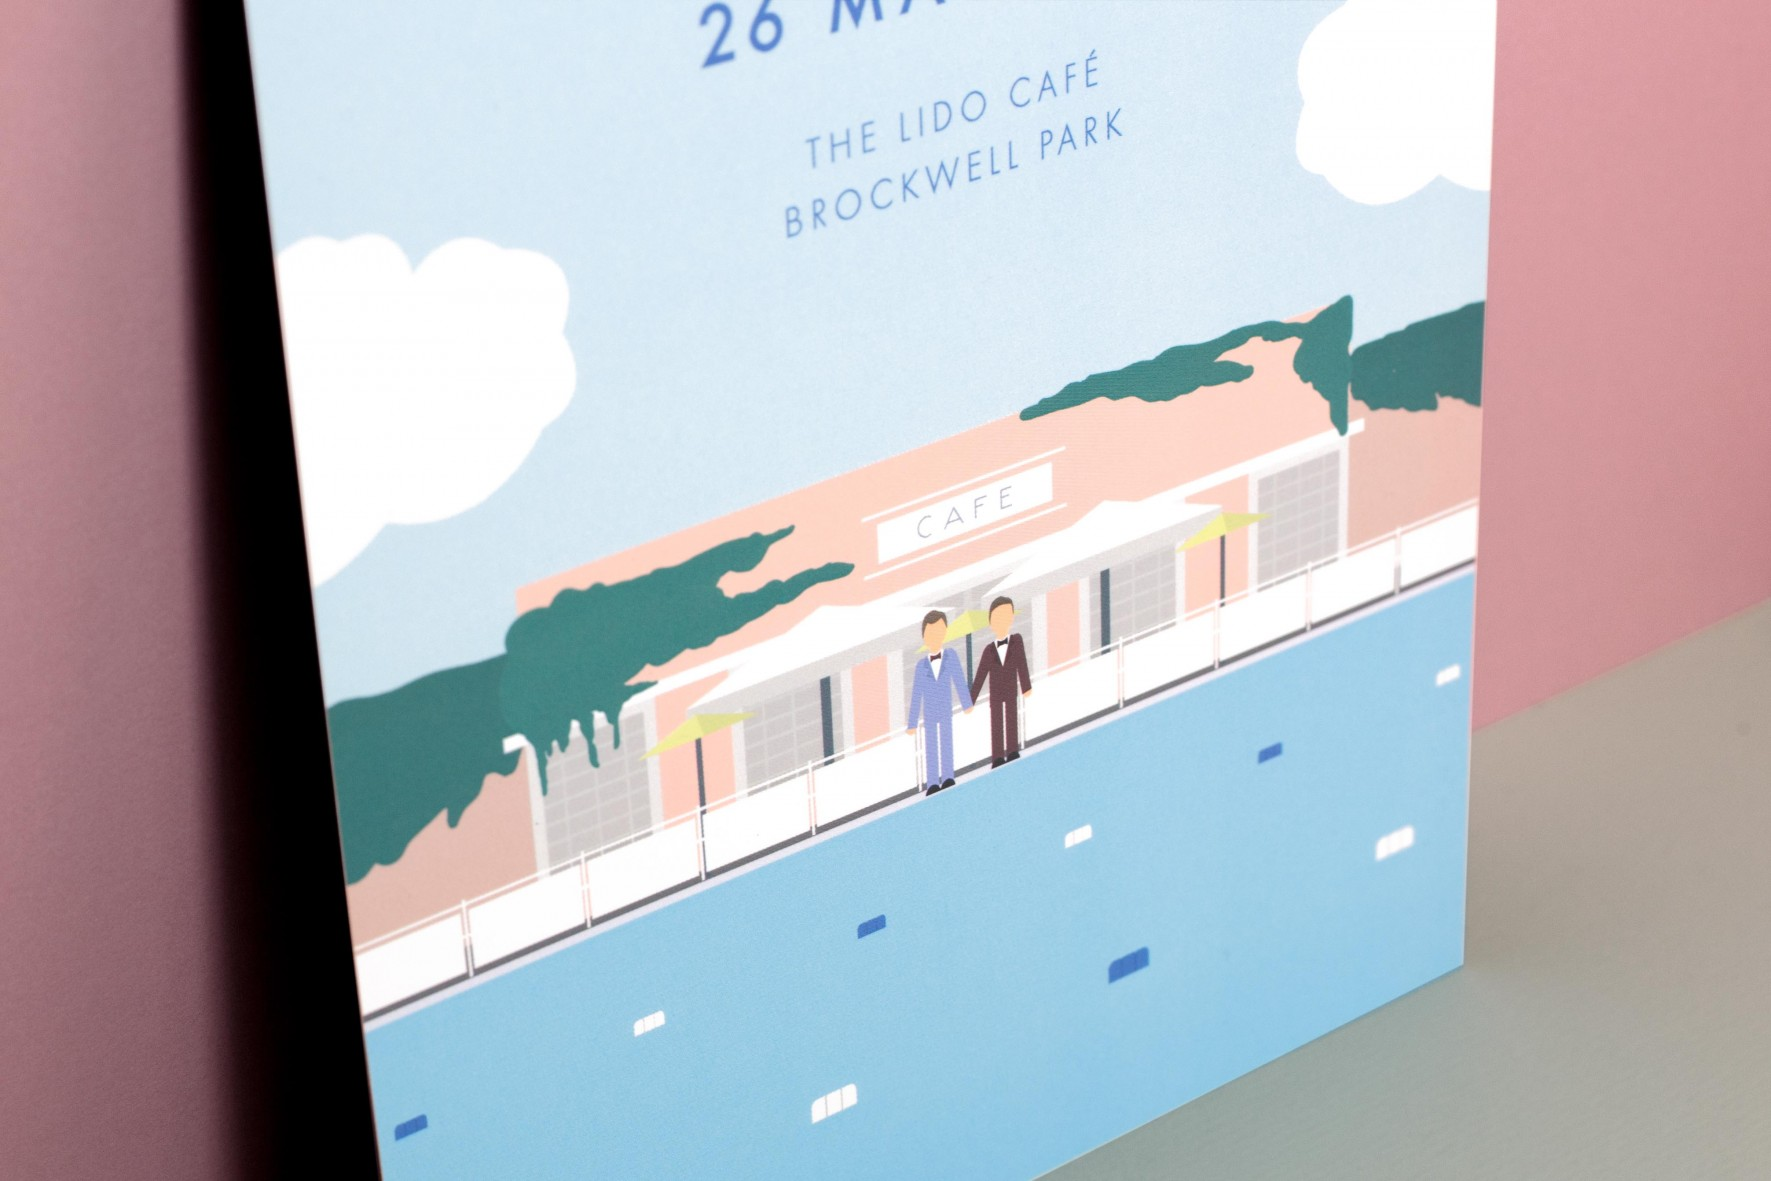 Art deco travel poster inspired wedding invitation illustration - gay wedding - Brockwell Lido by www.rosepaperscissors.com